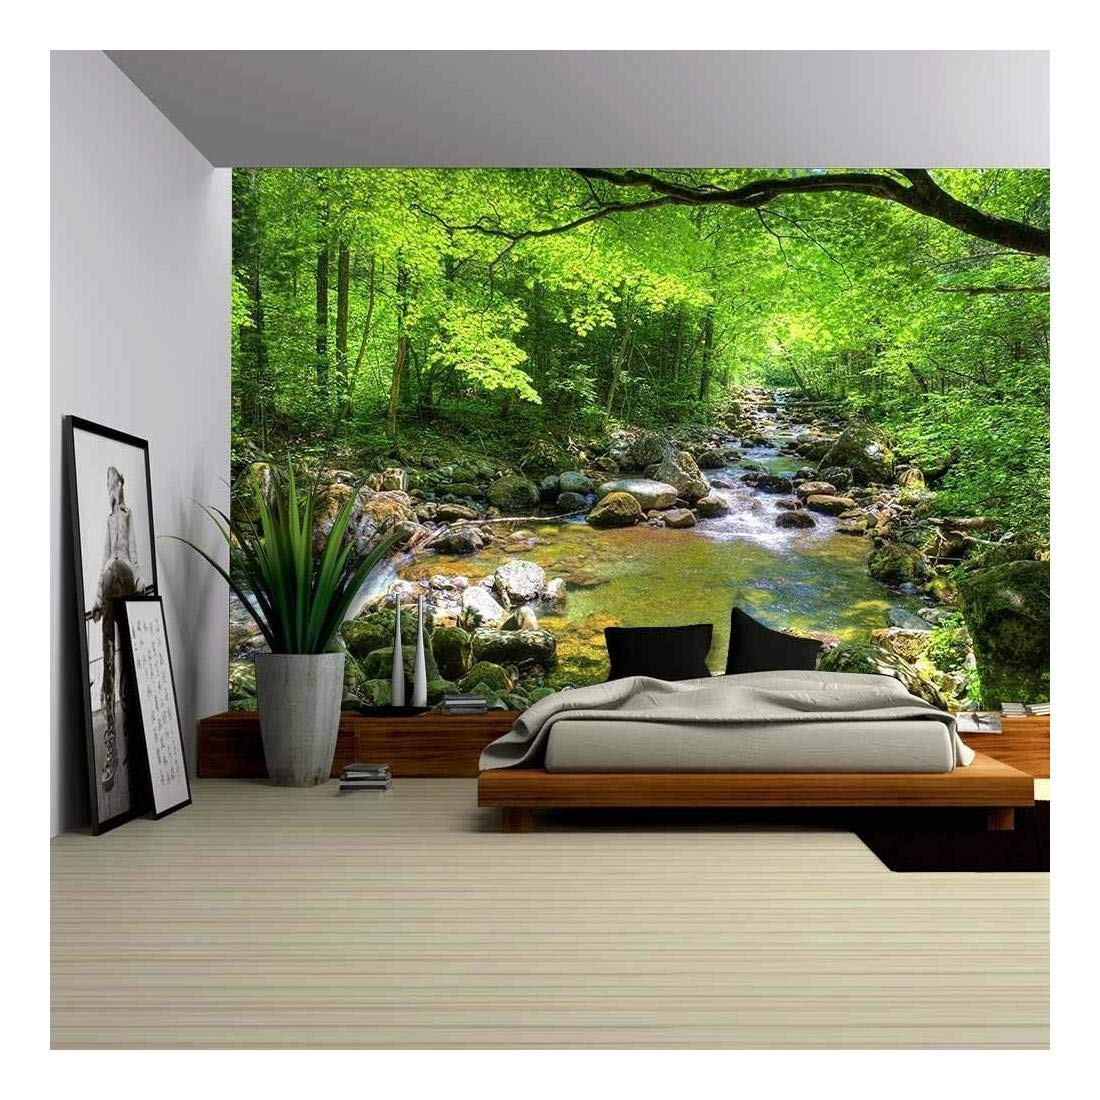 wall26 - Fall Forest Stream Smolny in Russian Primorye Reserve - Removable Wall Mural   Self-Adhesive Large Wallpaper - 100x144 inches by wall26